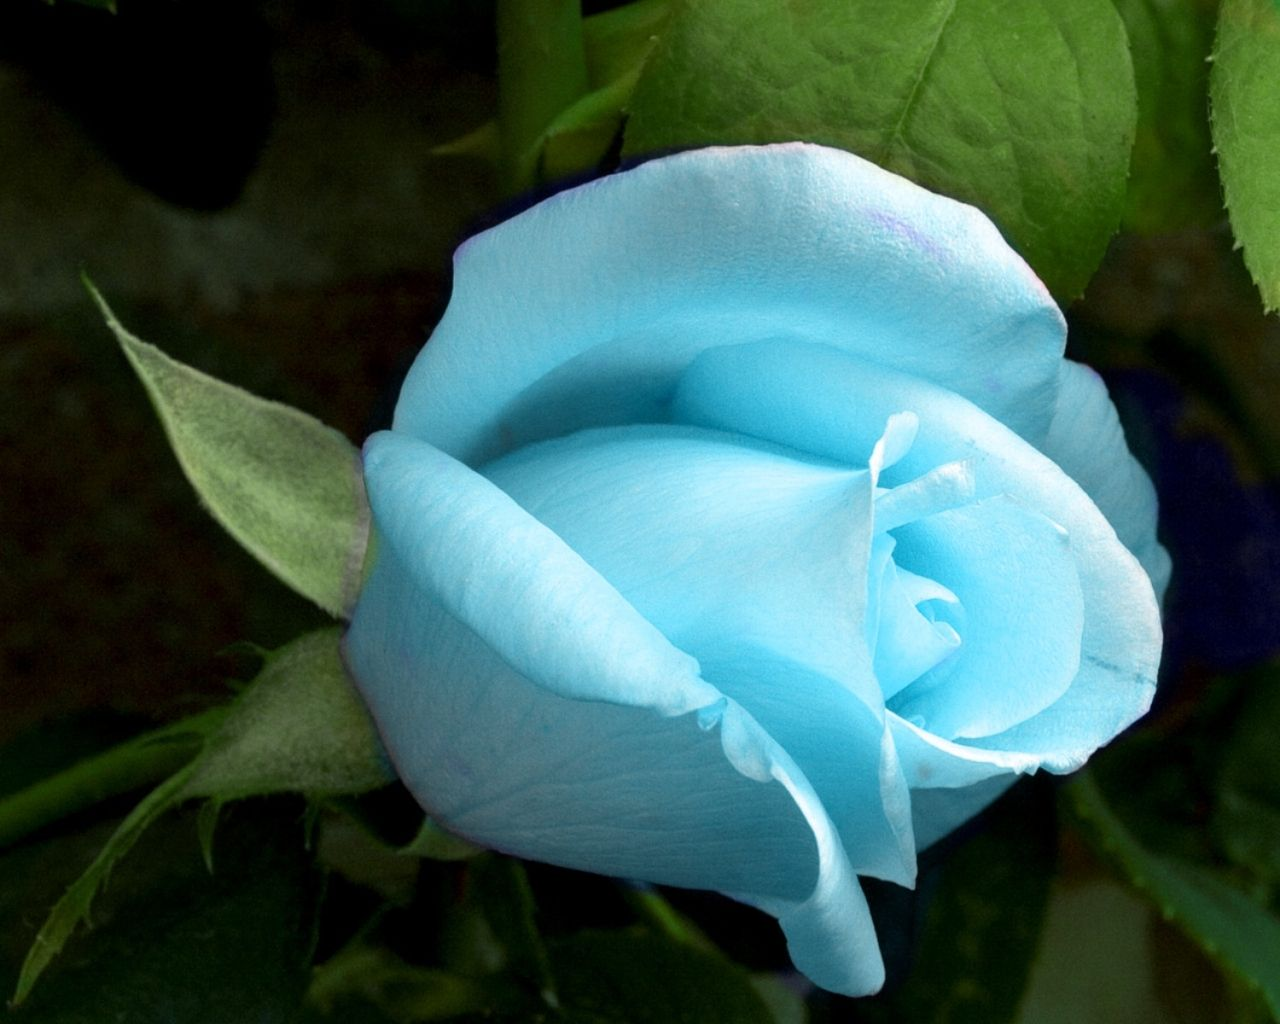 Names of rare and unusal color hybrid roses plants and flowers names of rare and unusal color hybrid roses plants and flowers rose at its elegance gives you the feel of purity and love a blue rose izmirmasajfo